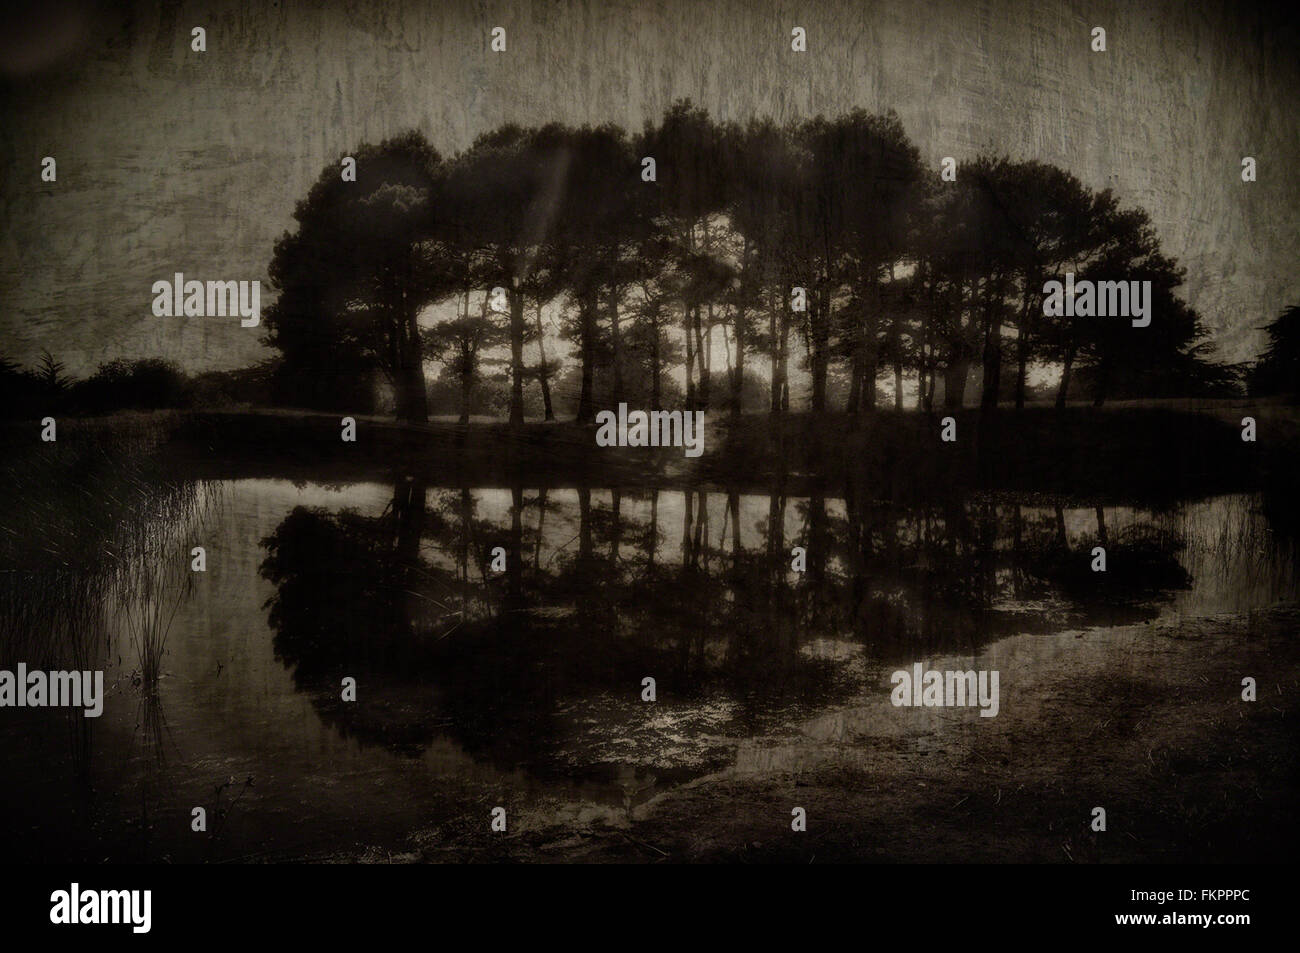 Grove of trees next to a pond. textural overlay added and sepia-toned to make the image look vintage. - Stock Image